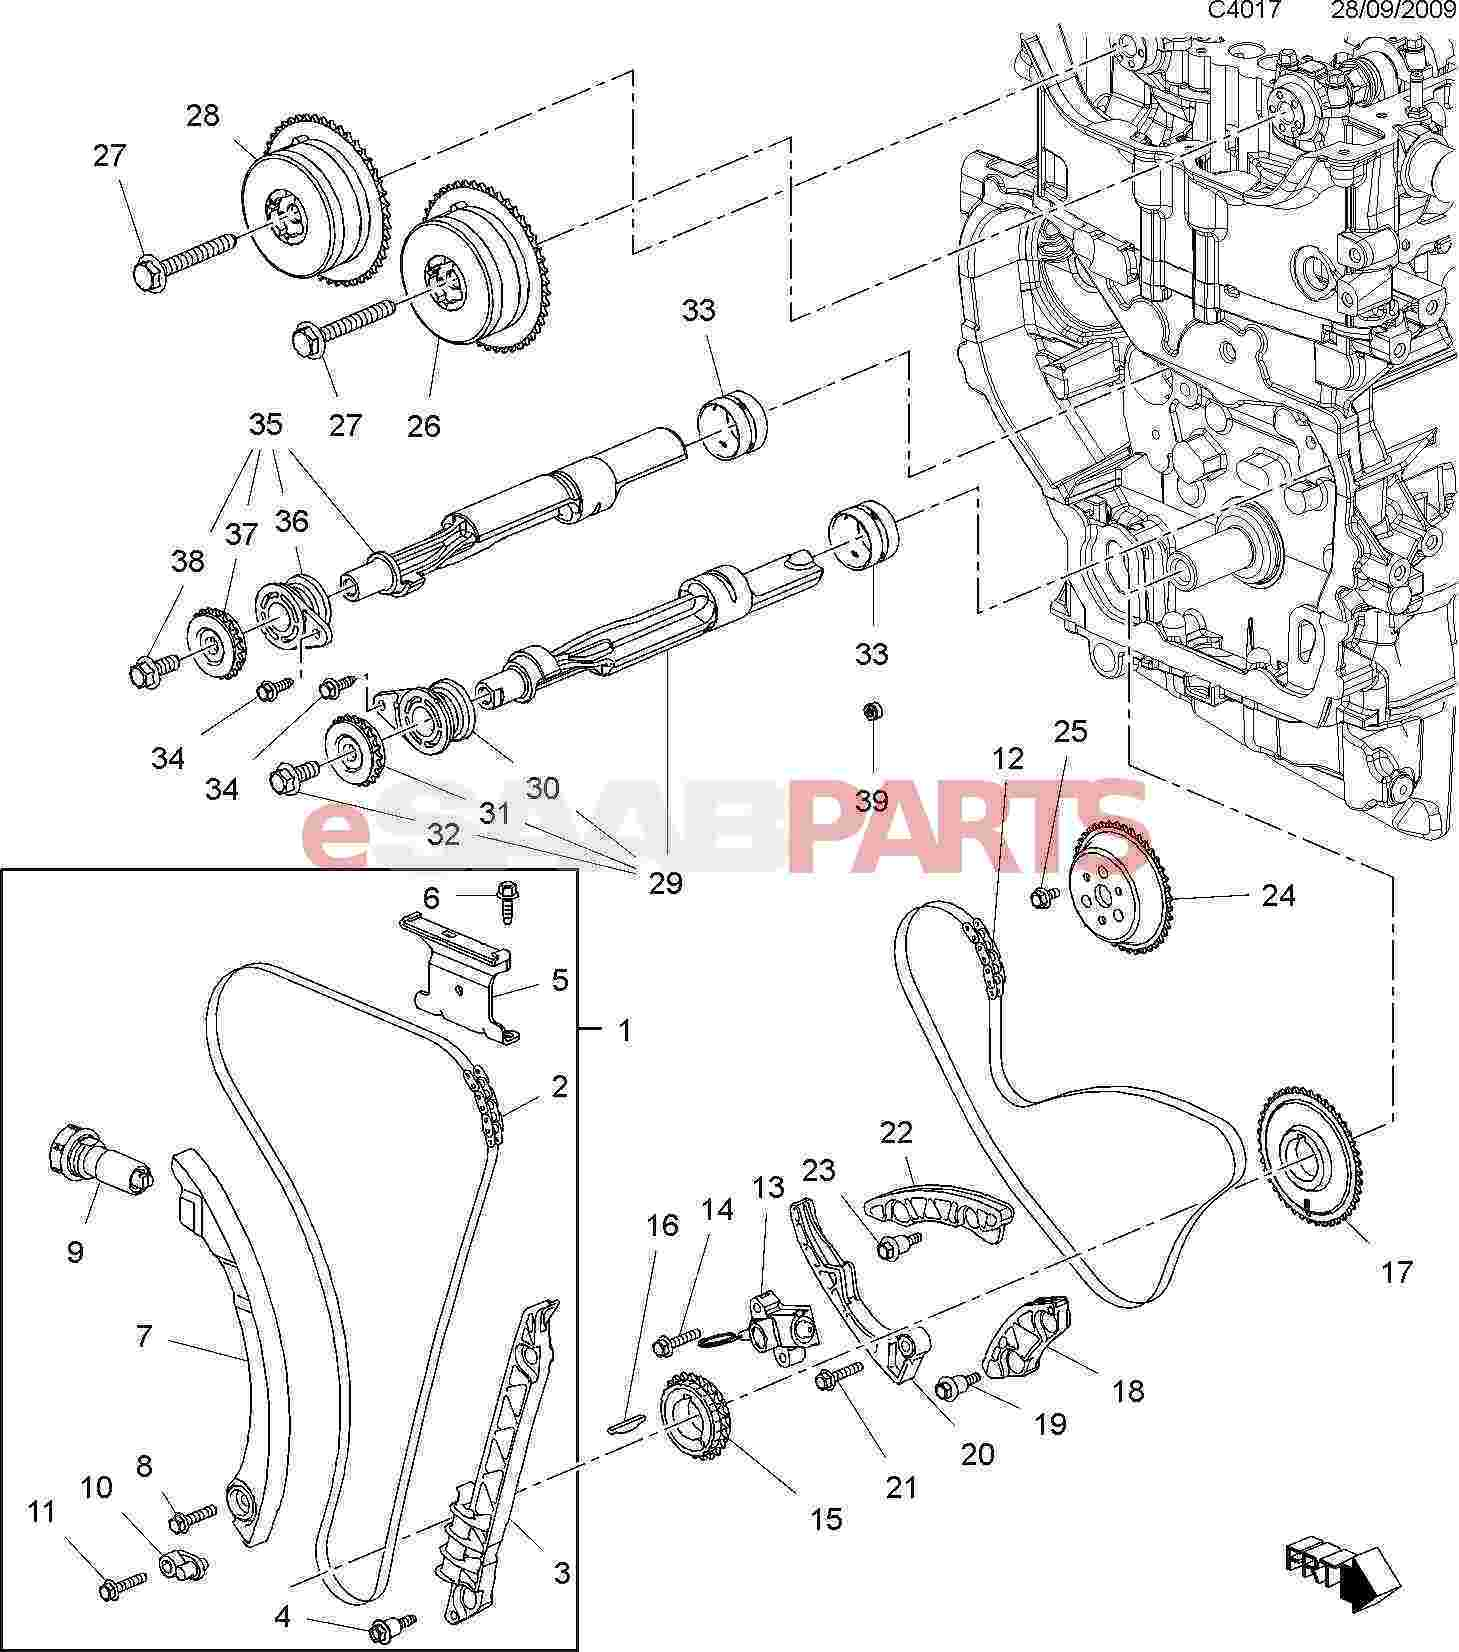 13104978  saab guide - timing chain